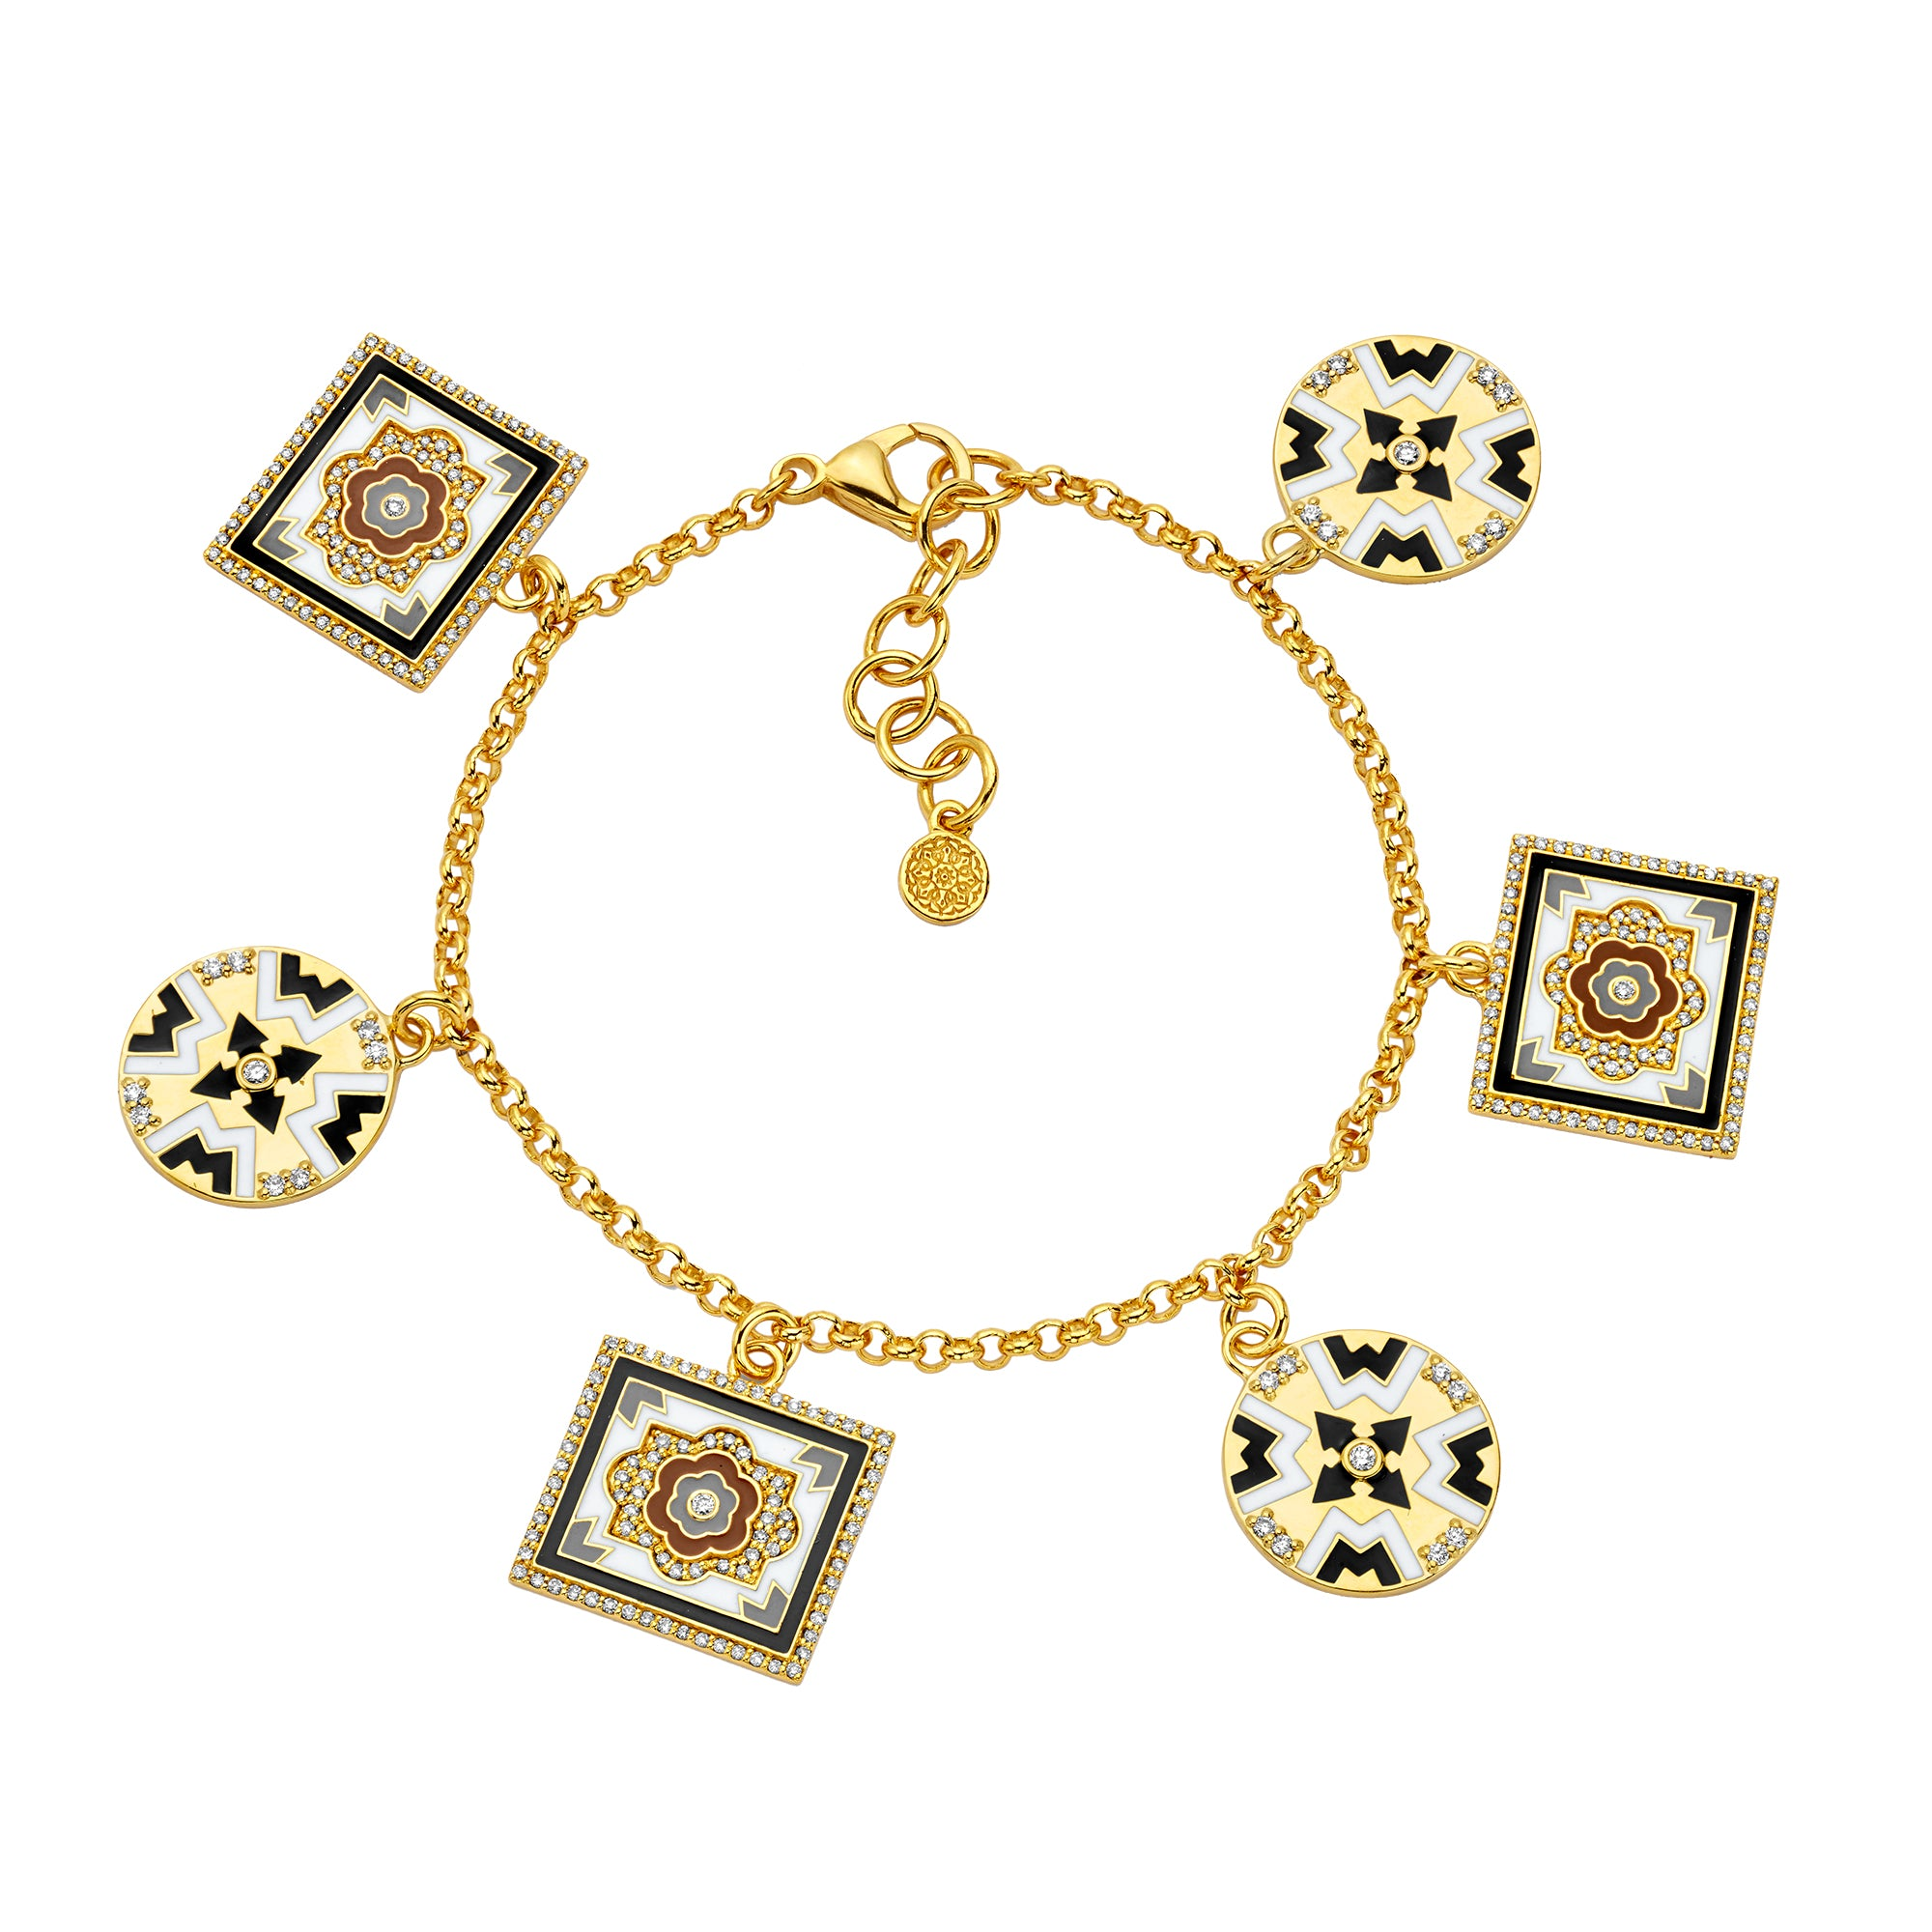 Gold Enamel White Diamond Tile Charm Bracelet by Buddha Mama for Broken English Jewelry